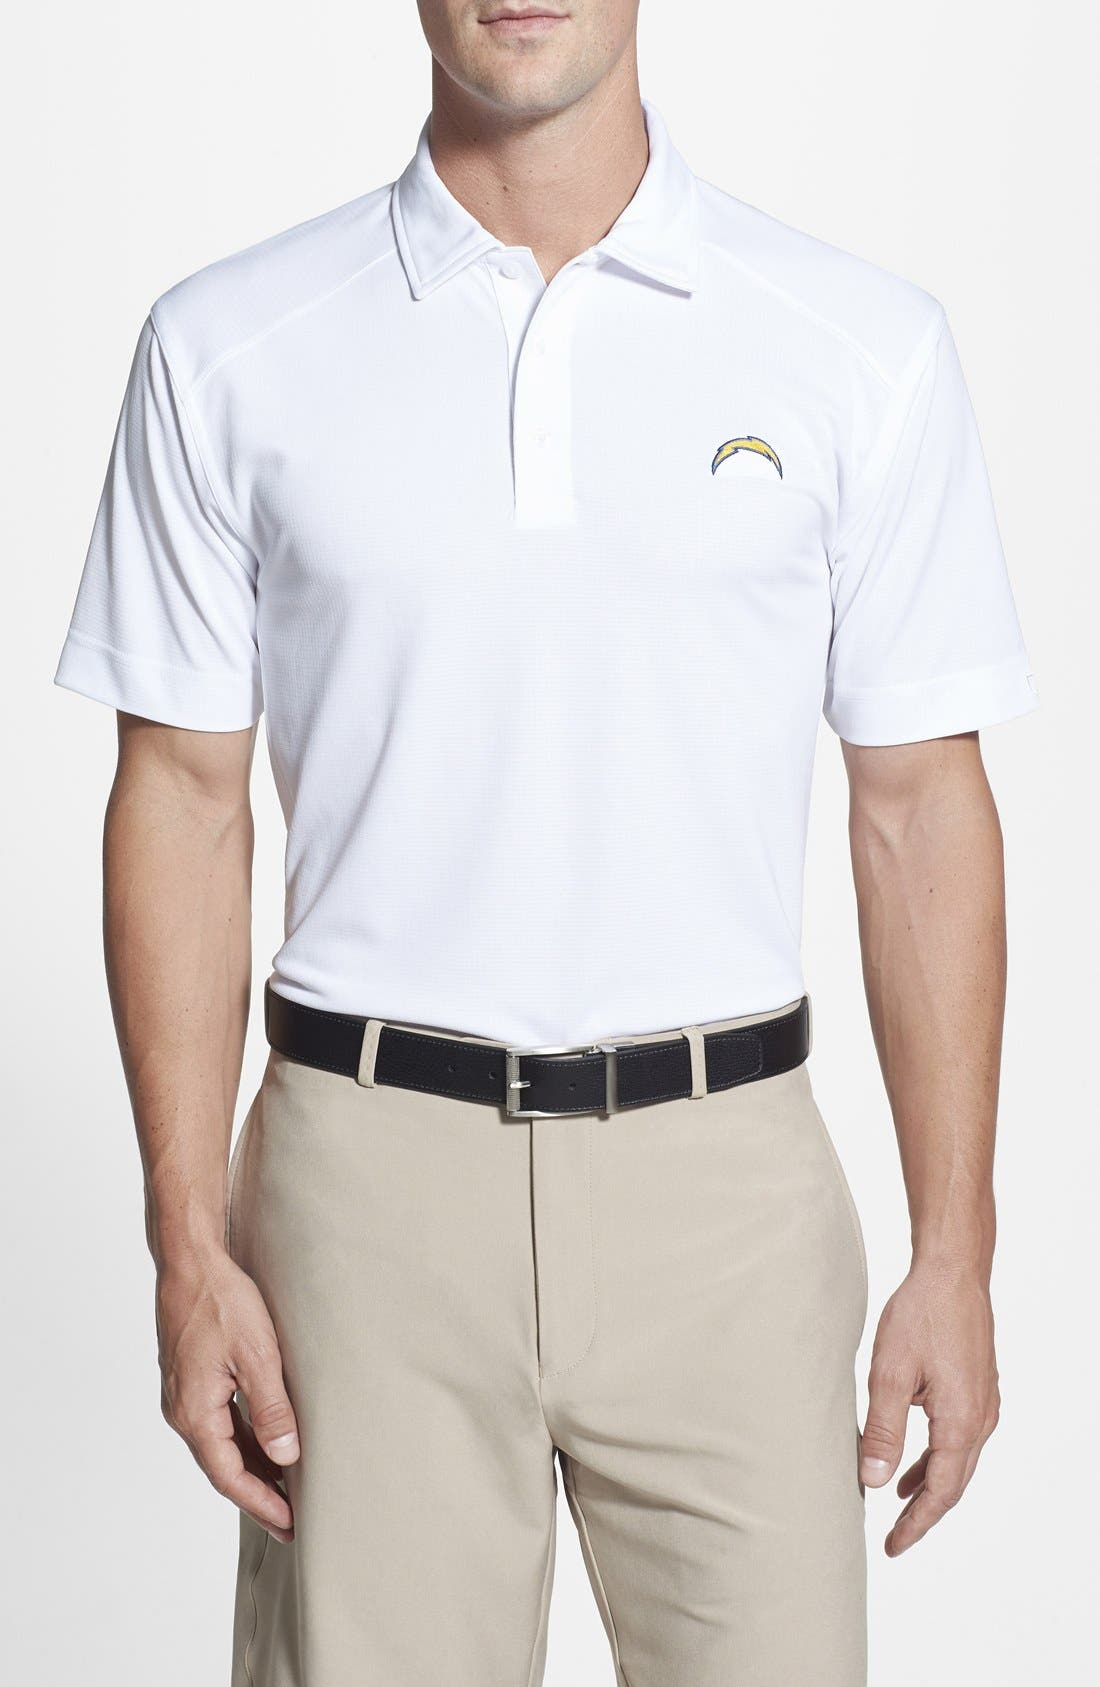 San Diego Chargers - Genre DryTec Moisture Wicking Polo,                         Main,                         color, 100